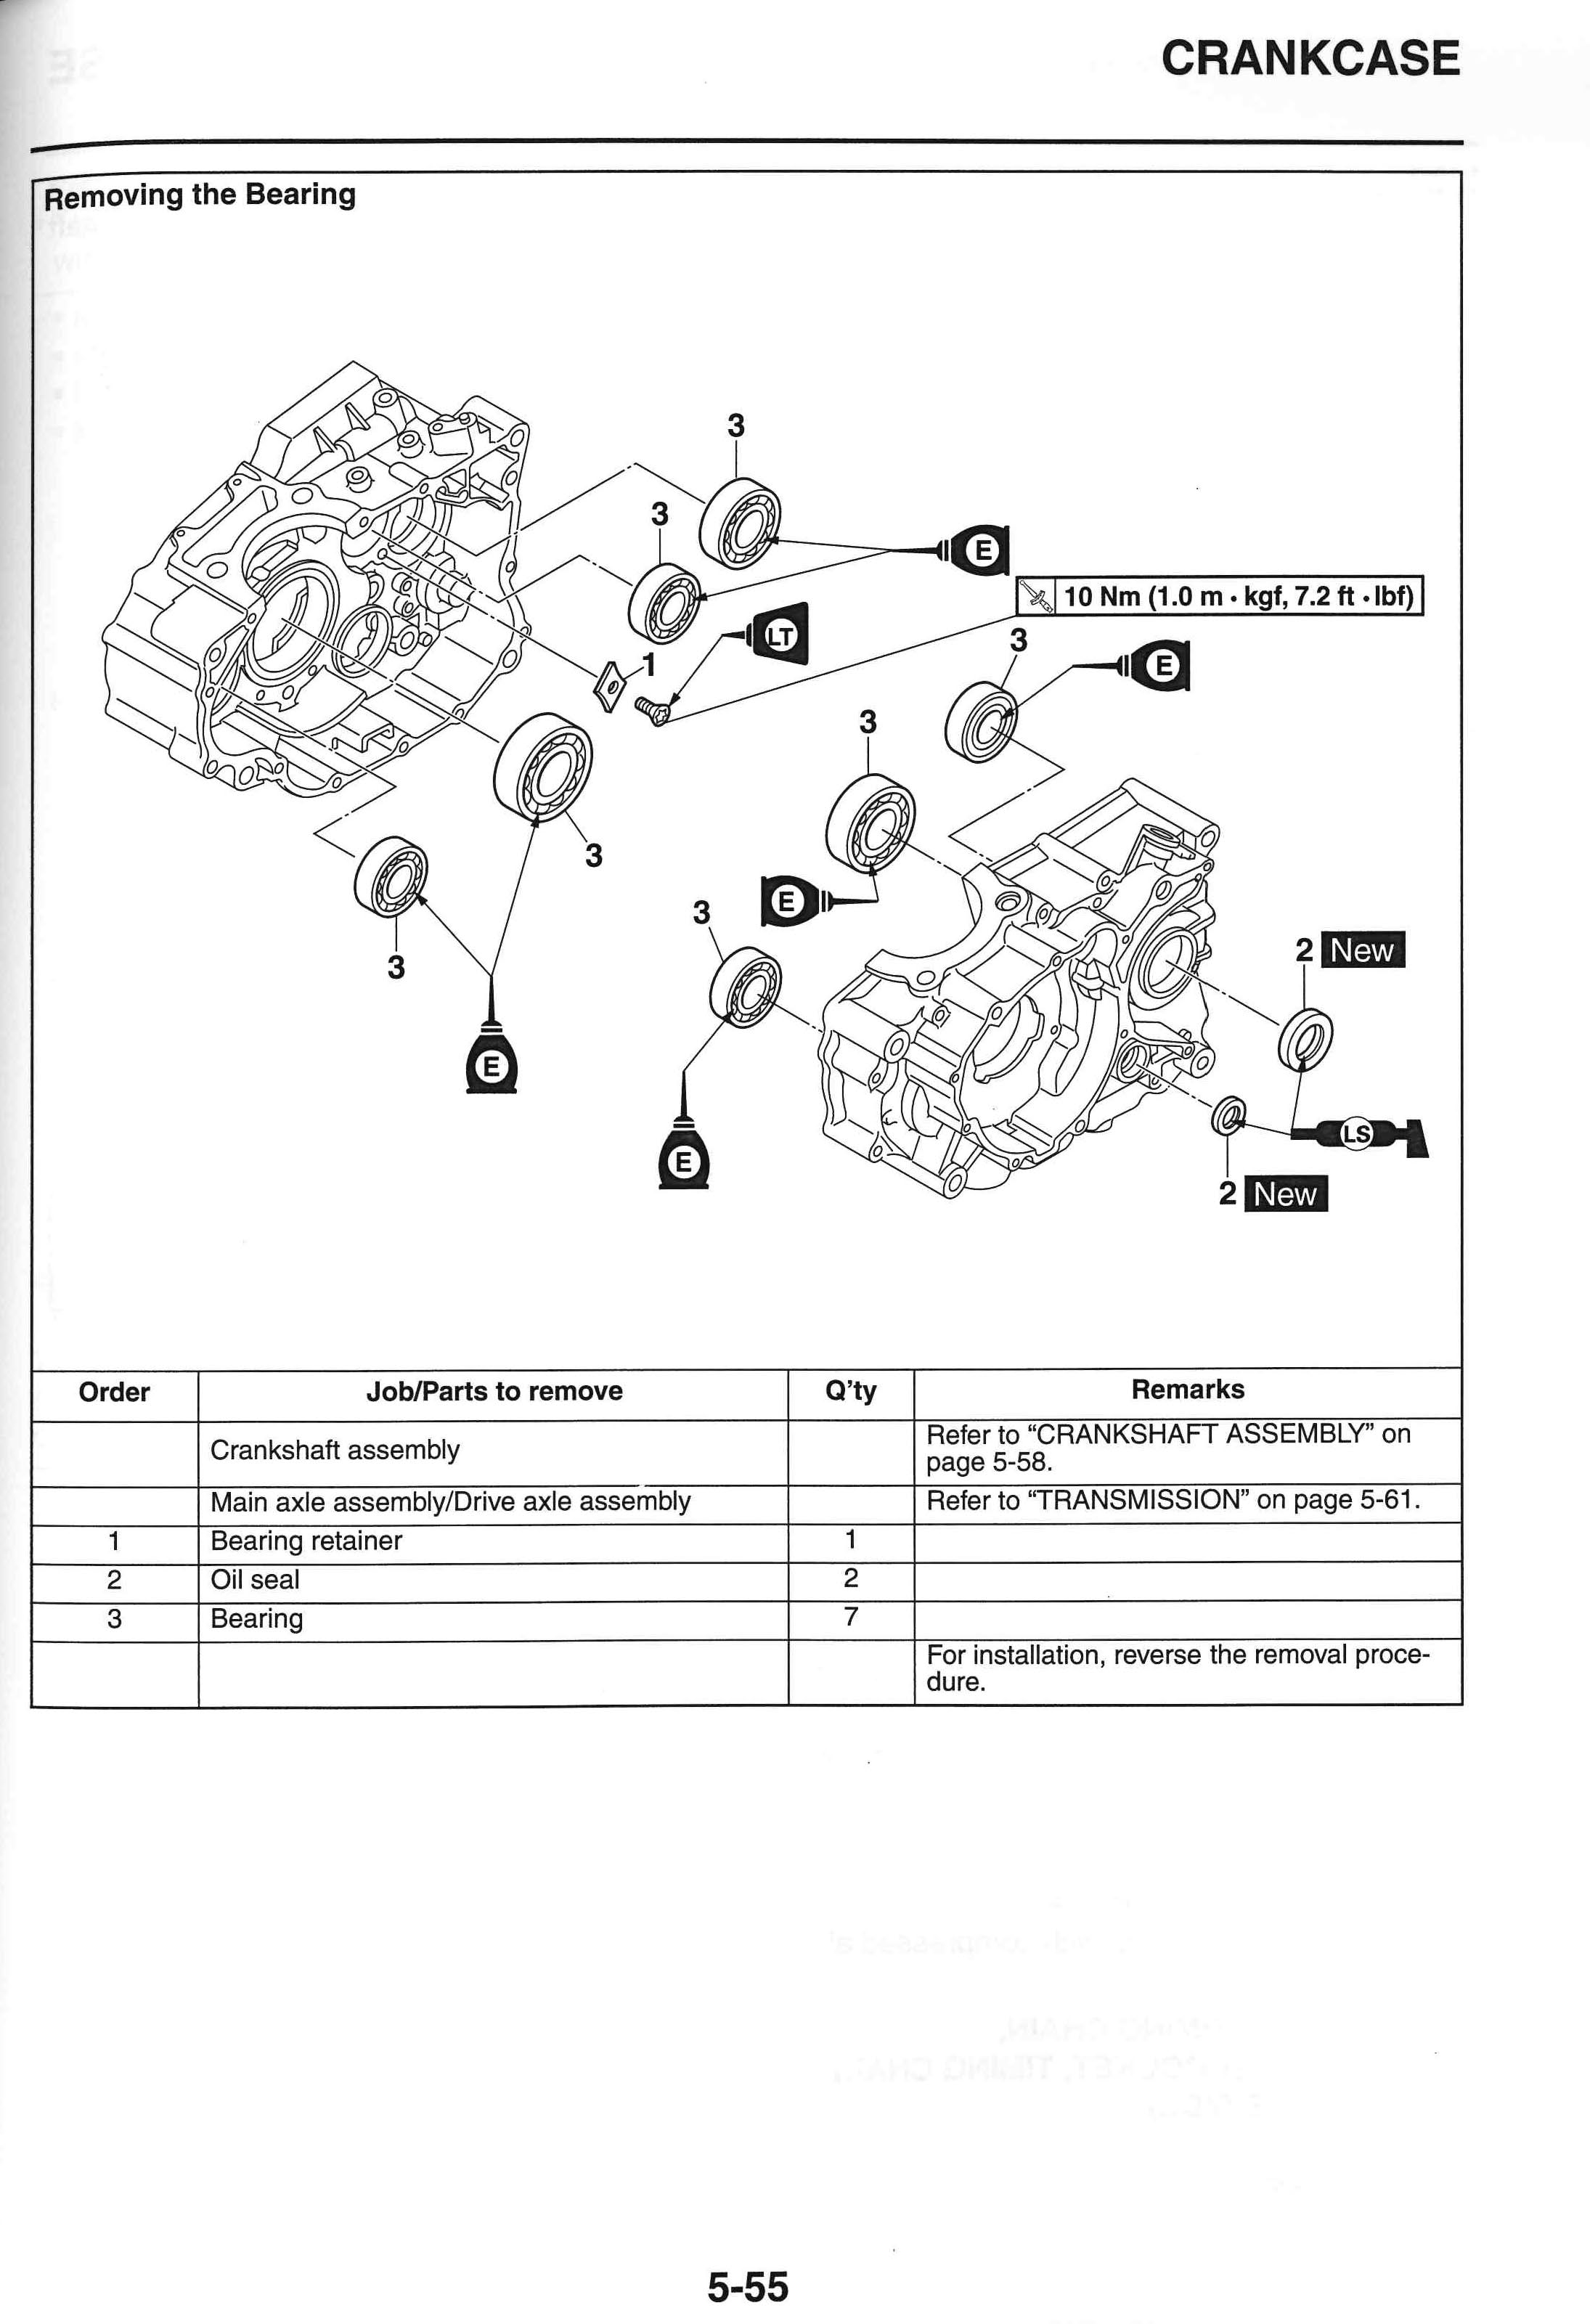 yamaha zeal wiring diagram 2002 yamaha zuma wiring diagram 2013 – 2018 yamaha xt250 motorcycle service manual